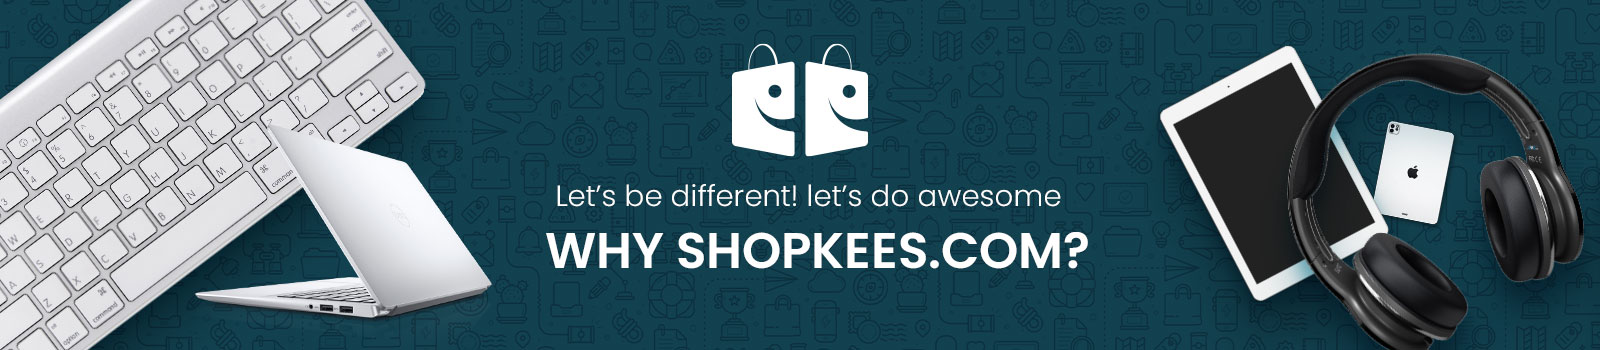 About Shopkees